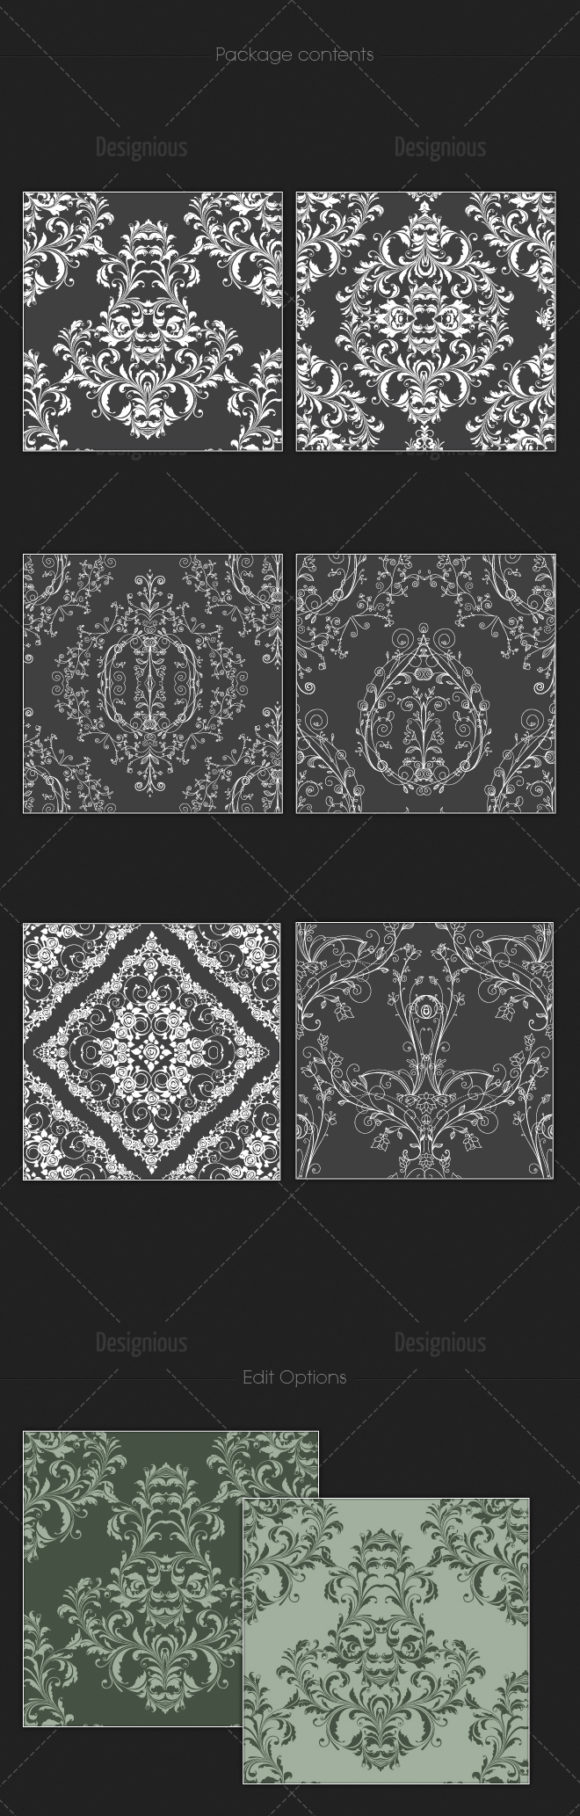 Seamless Patterns Vector Pack 110 Vector Patterns [tag]